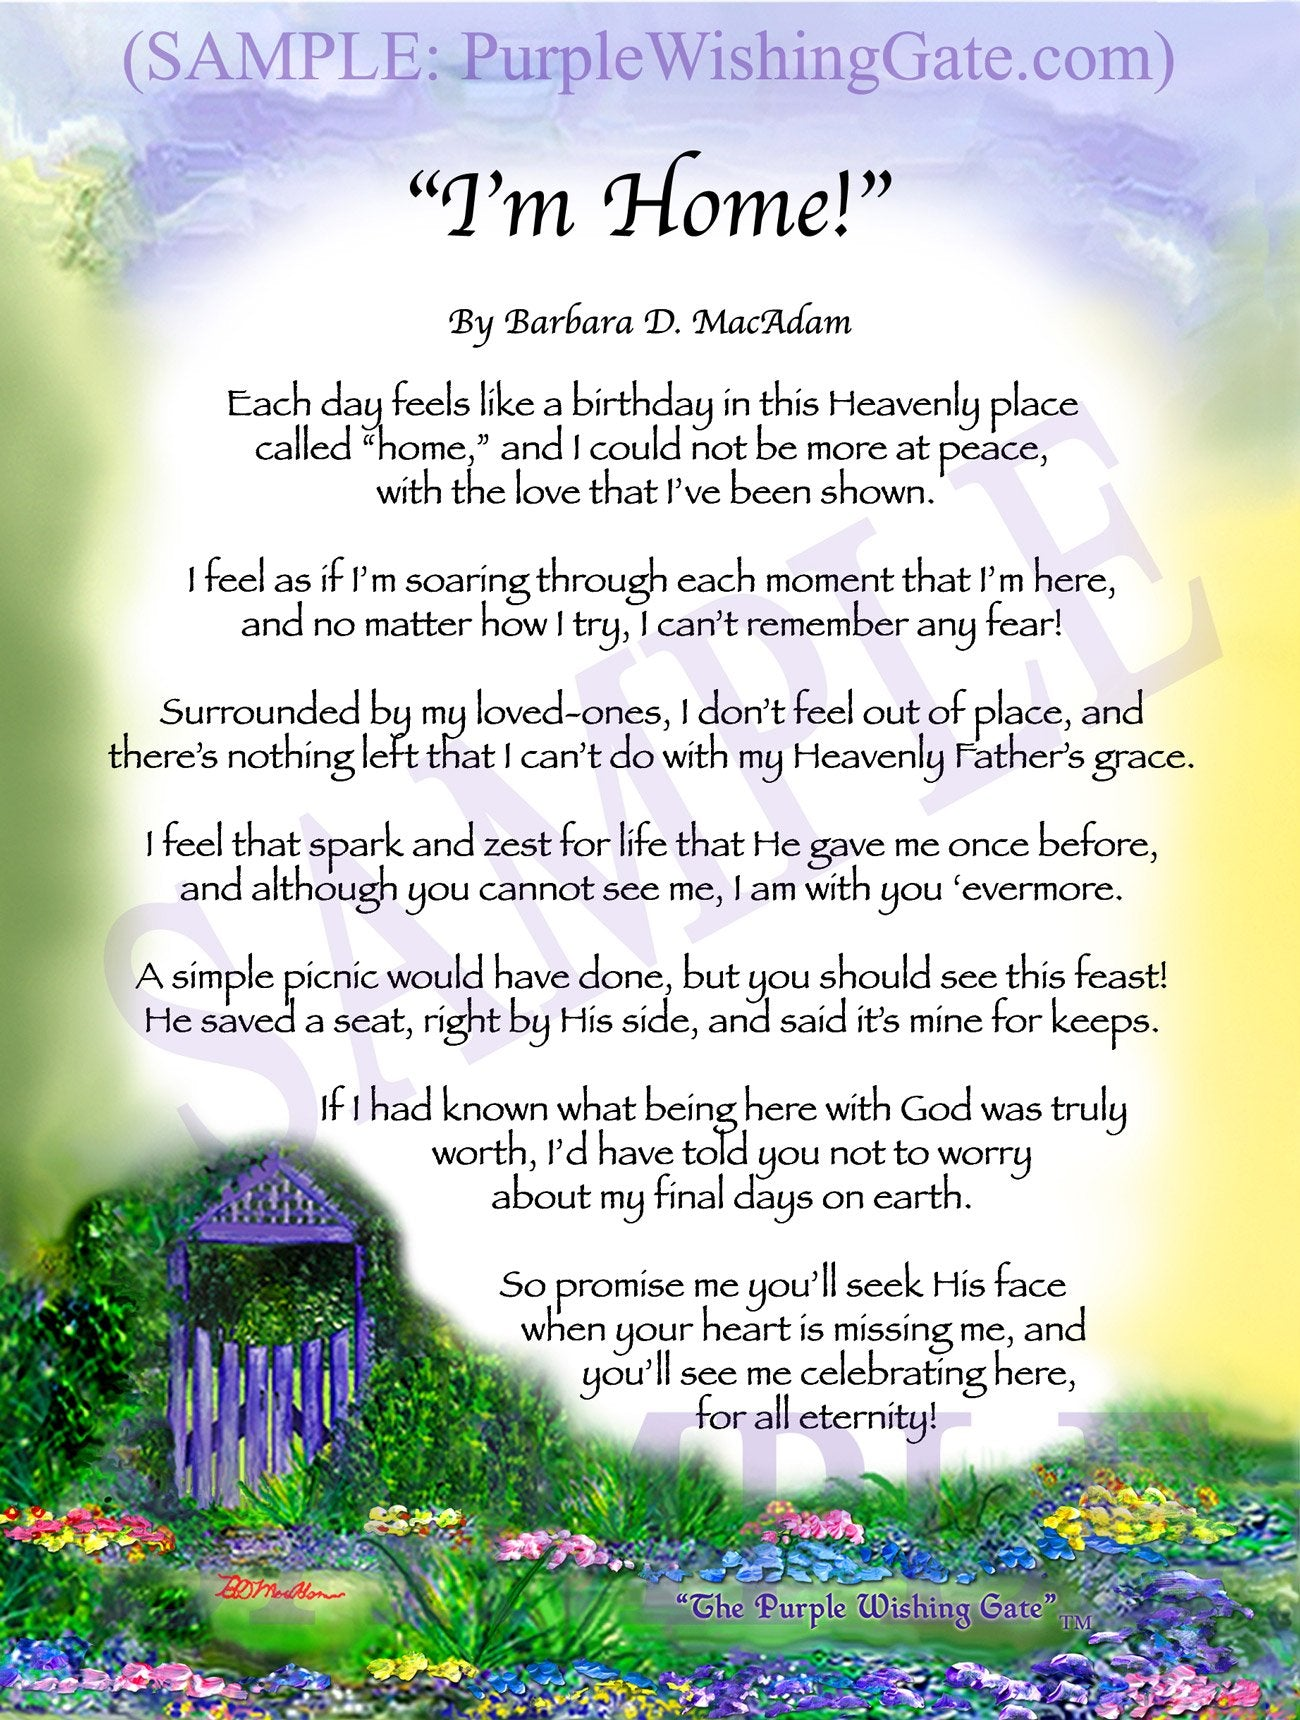 """I'm Home!"" - Memorial Gift - PurpleWishingGate.com"